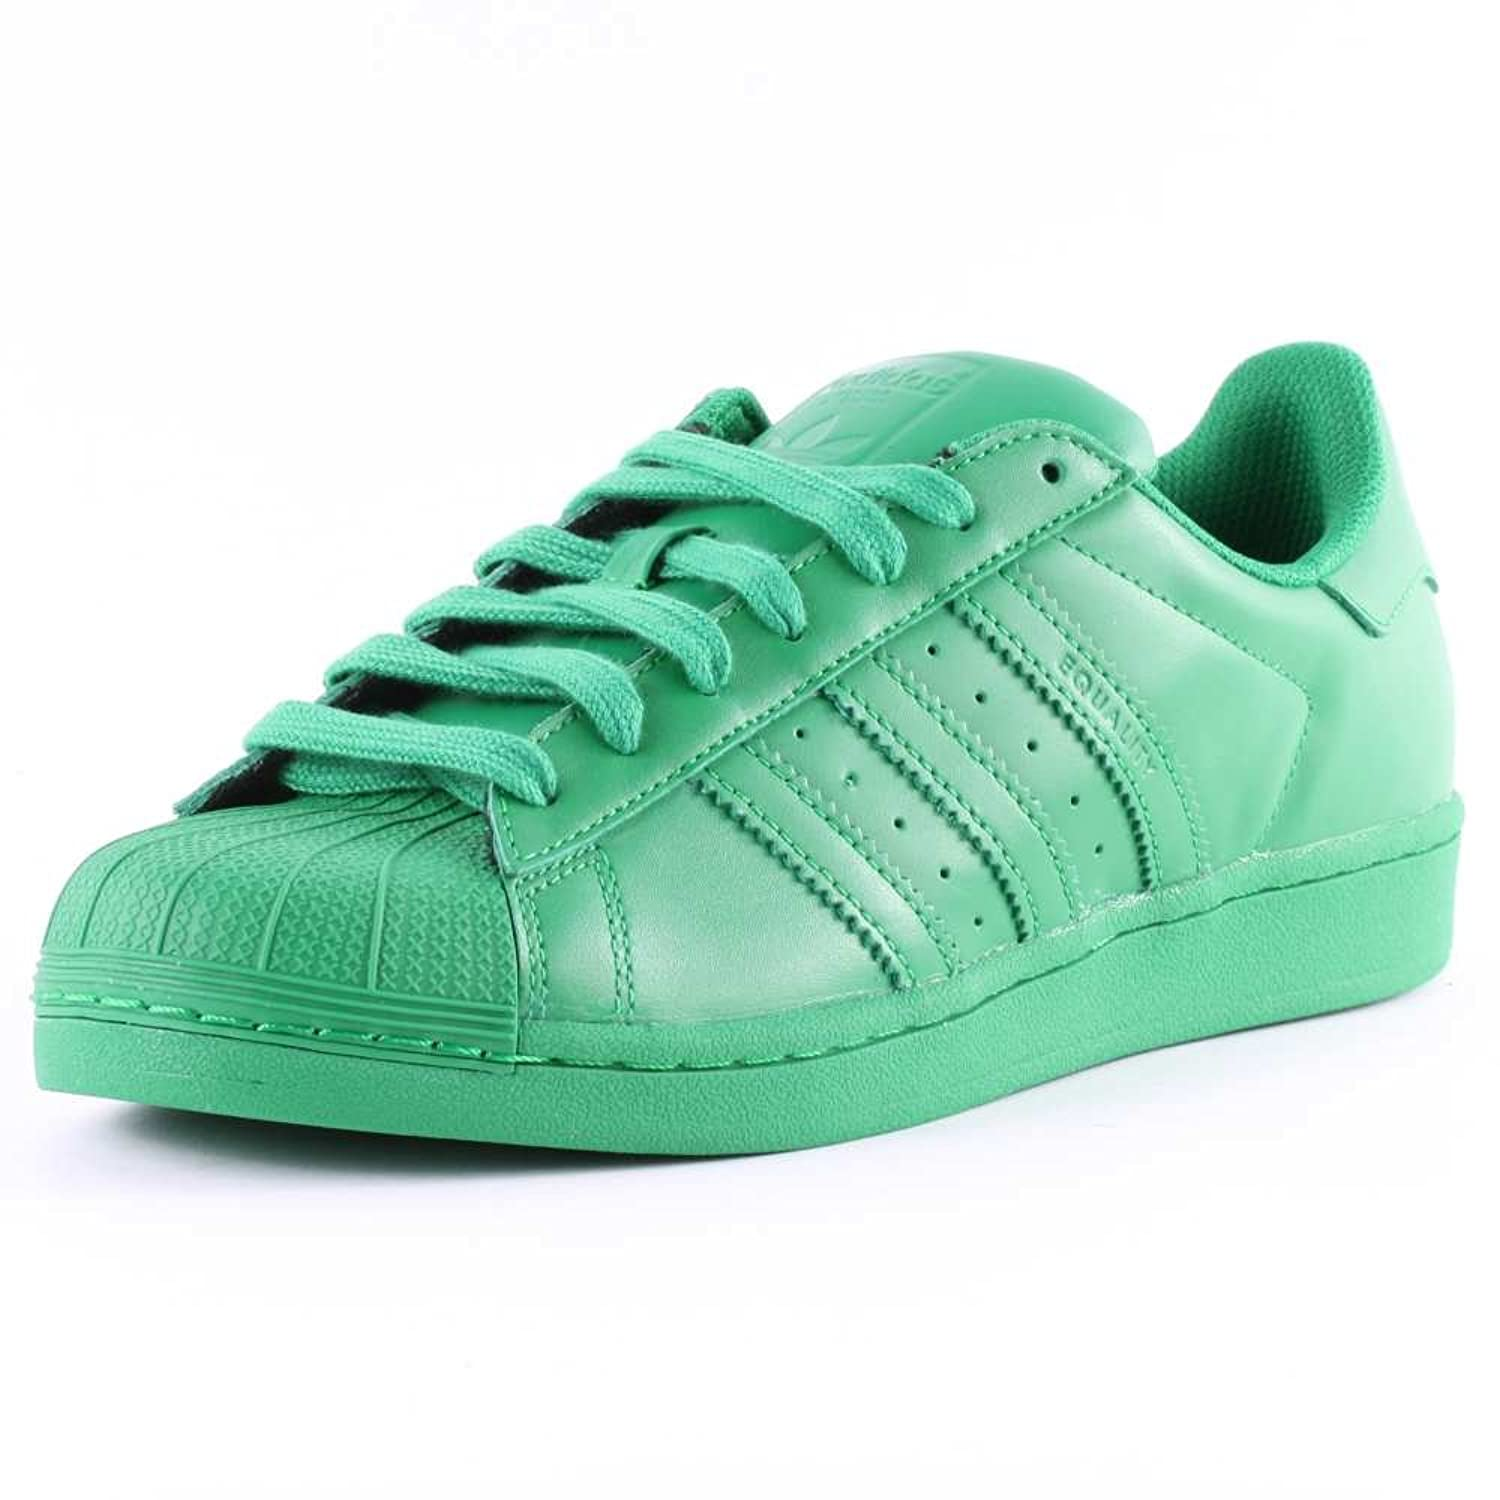 Prime Superstar Adidas Amazon Superstar Adidas c1FuTlK3J